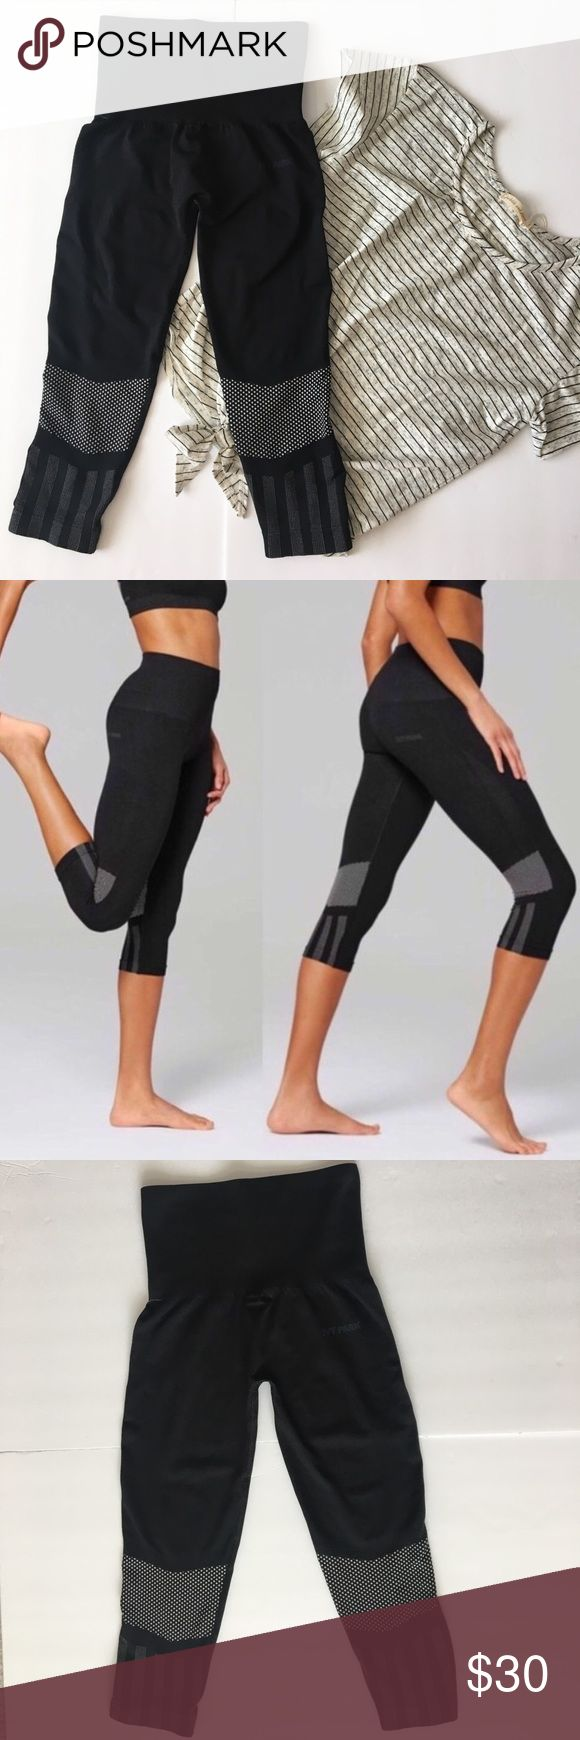 New Ivy Park Black Leggings Size: 0-2 New Without Tags! Super Comfy! Capri-length leggings with ventilating knit mesh at the knees are made from a technical stretch fabric with sweat-wicking and quick-drying properties, making them optimal for both high- and low-impact workouts. A compression-ribbed waist supports and conforms to the body and can be folded down for a low-rise fit that reveals a stripe accent. Size: XXS/XS 0-2 Elastic waistband. Logo at back waist. 72% polyester, 24% nylon…